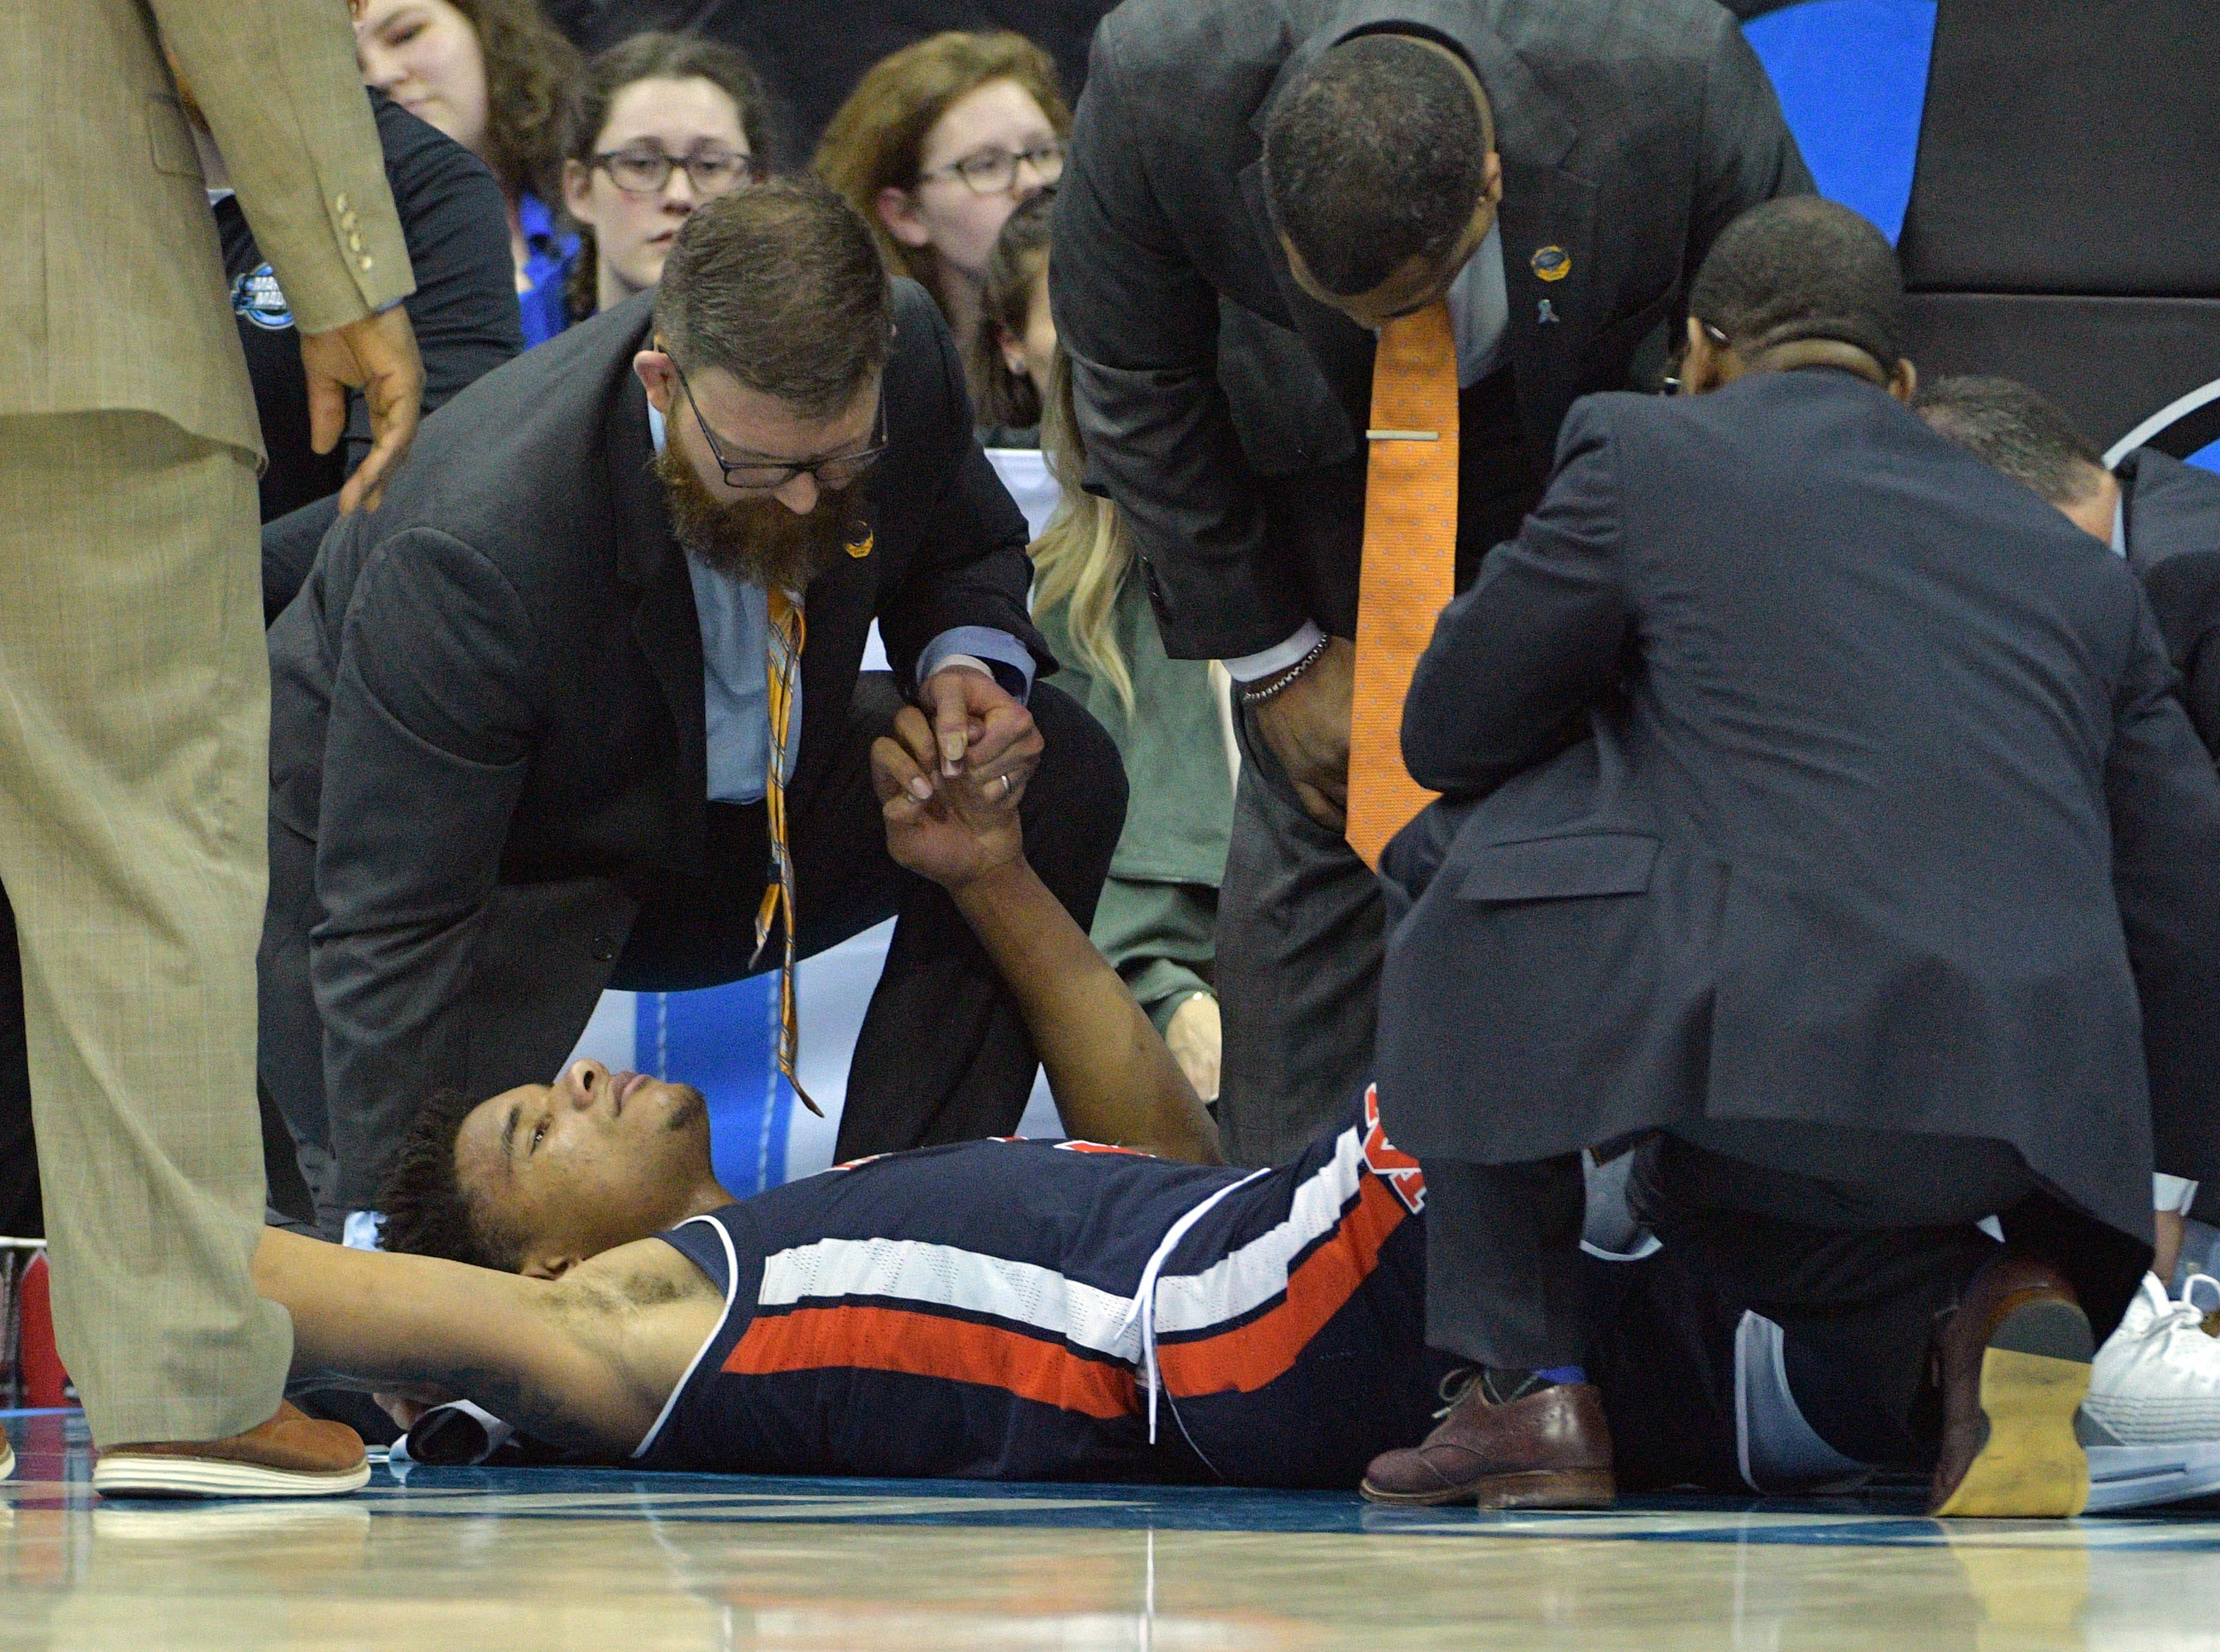 Mar 29, 2019; Kansas City, MO, United States; Auburn Tigers forward Chuma Okeke (5) is treated after suffering an apparent injury against the North Carolina Tar Heels during the second half in the semifinals of the midwest regional of the 2019 NCAA Tournament at Sprint Center. Mandatory Credit: Denny Medley-USA TODAY Sports